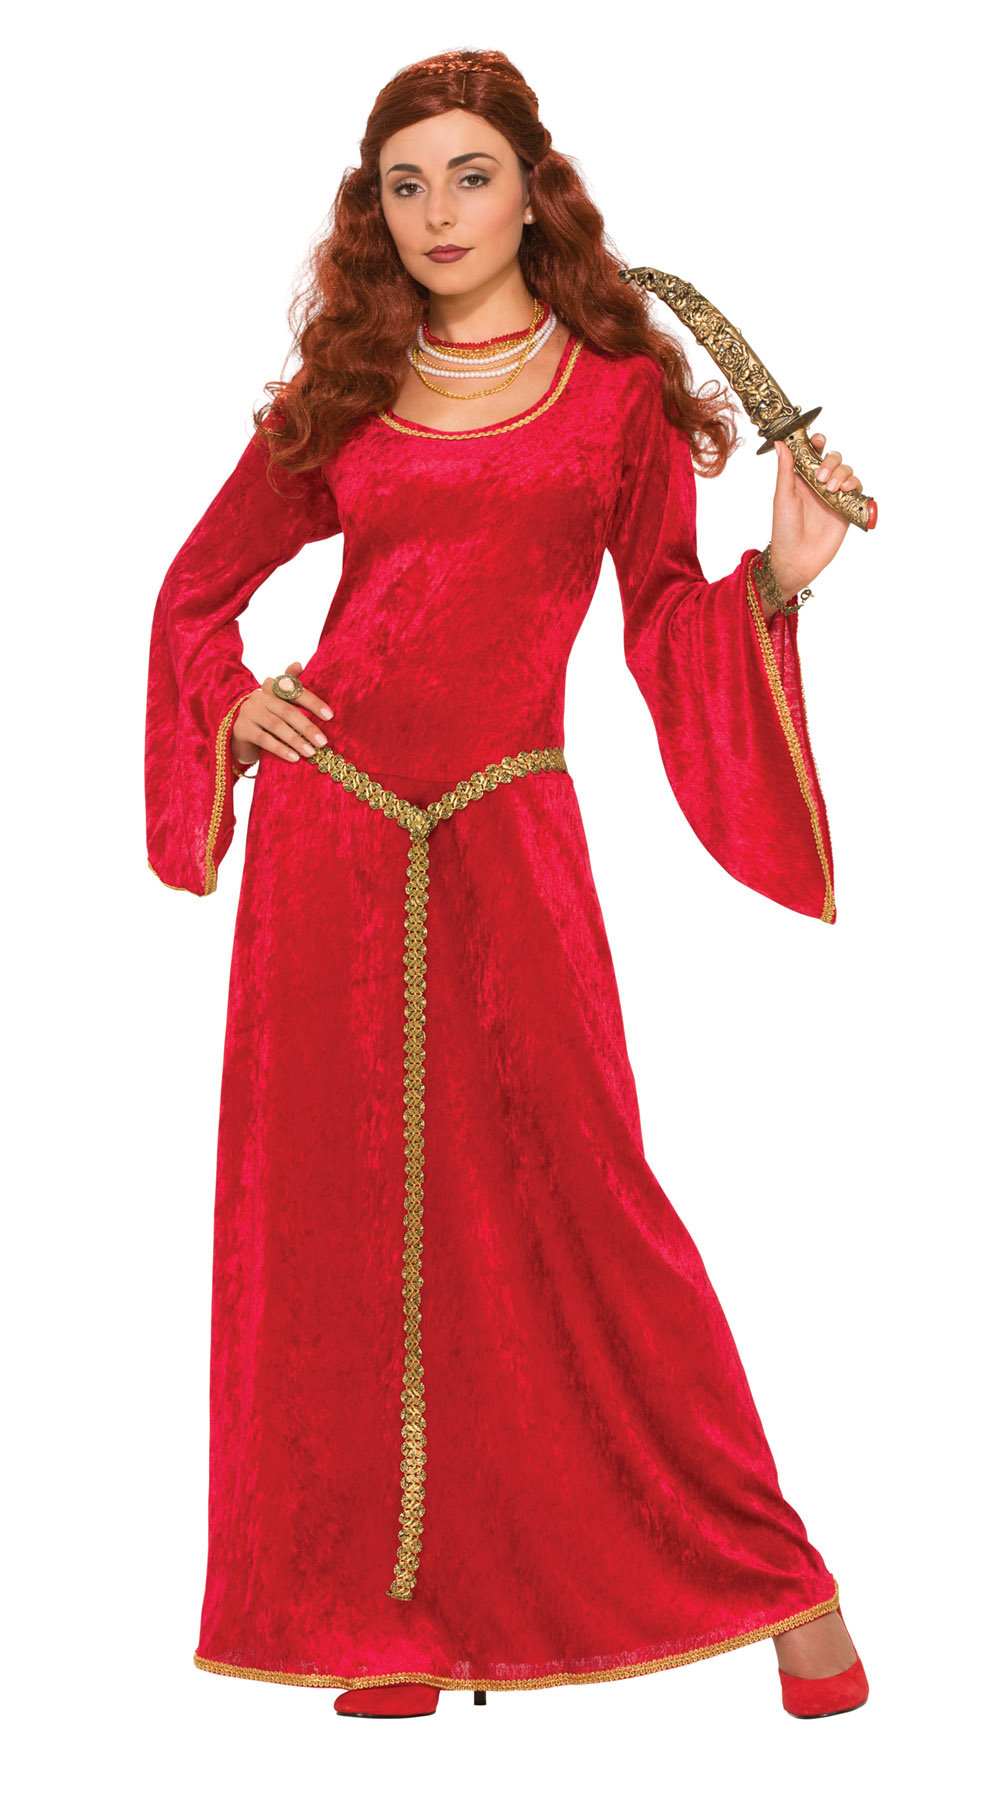 Red Sorceress Fancy Dress Costume Medieval Princess Game Of Thrones Outfit New